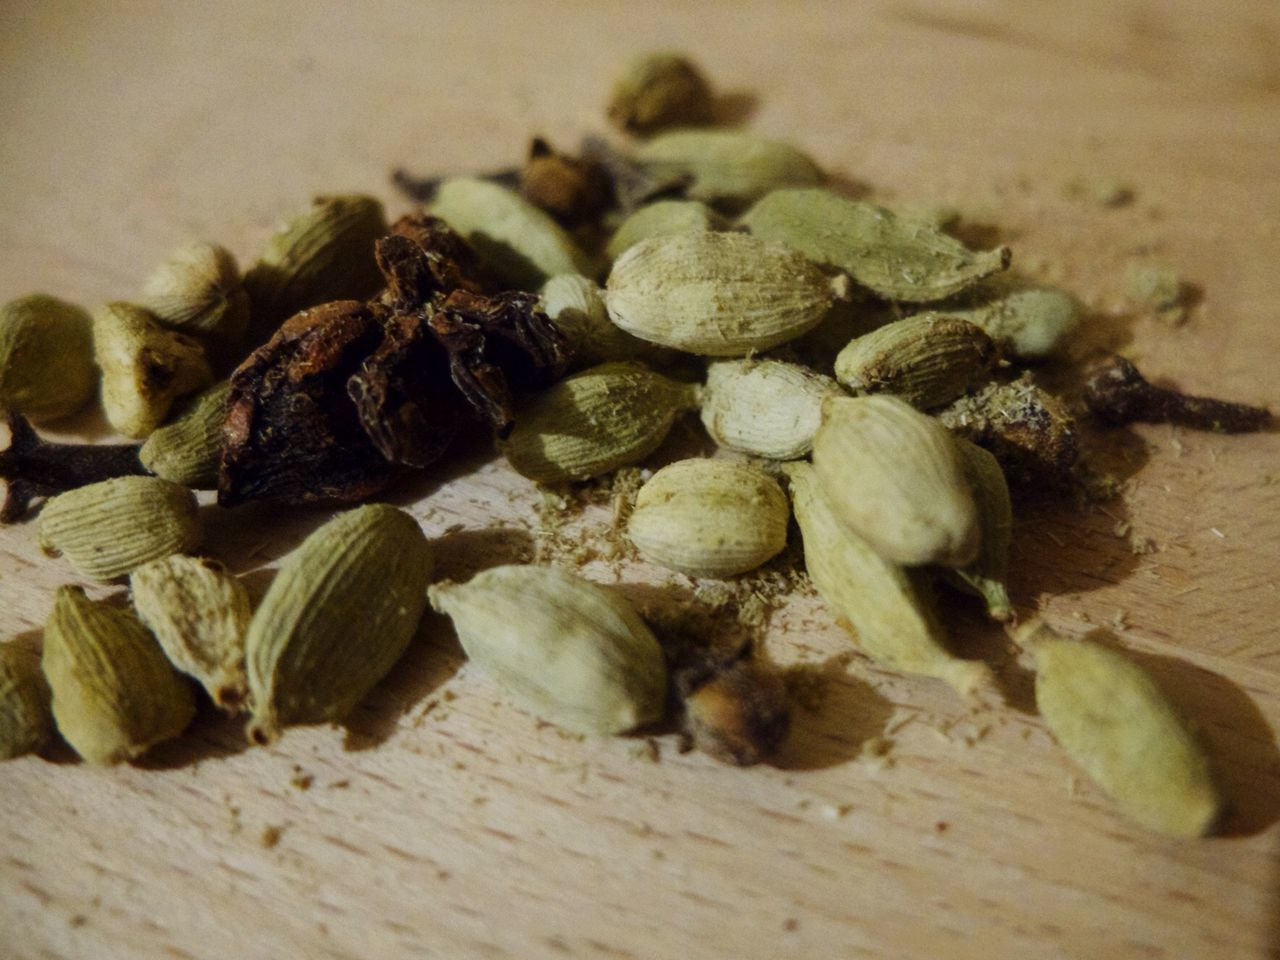 food and drink, close-up, no people, food, spice, selective focus, dried food, indoors, nut - food, day, freshness